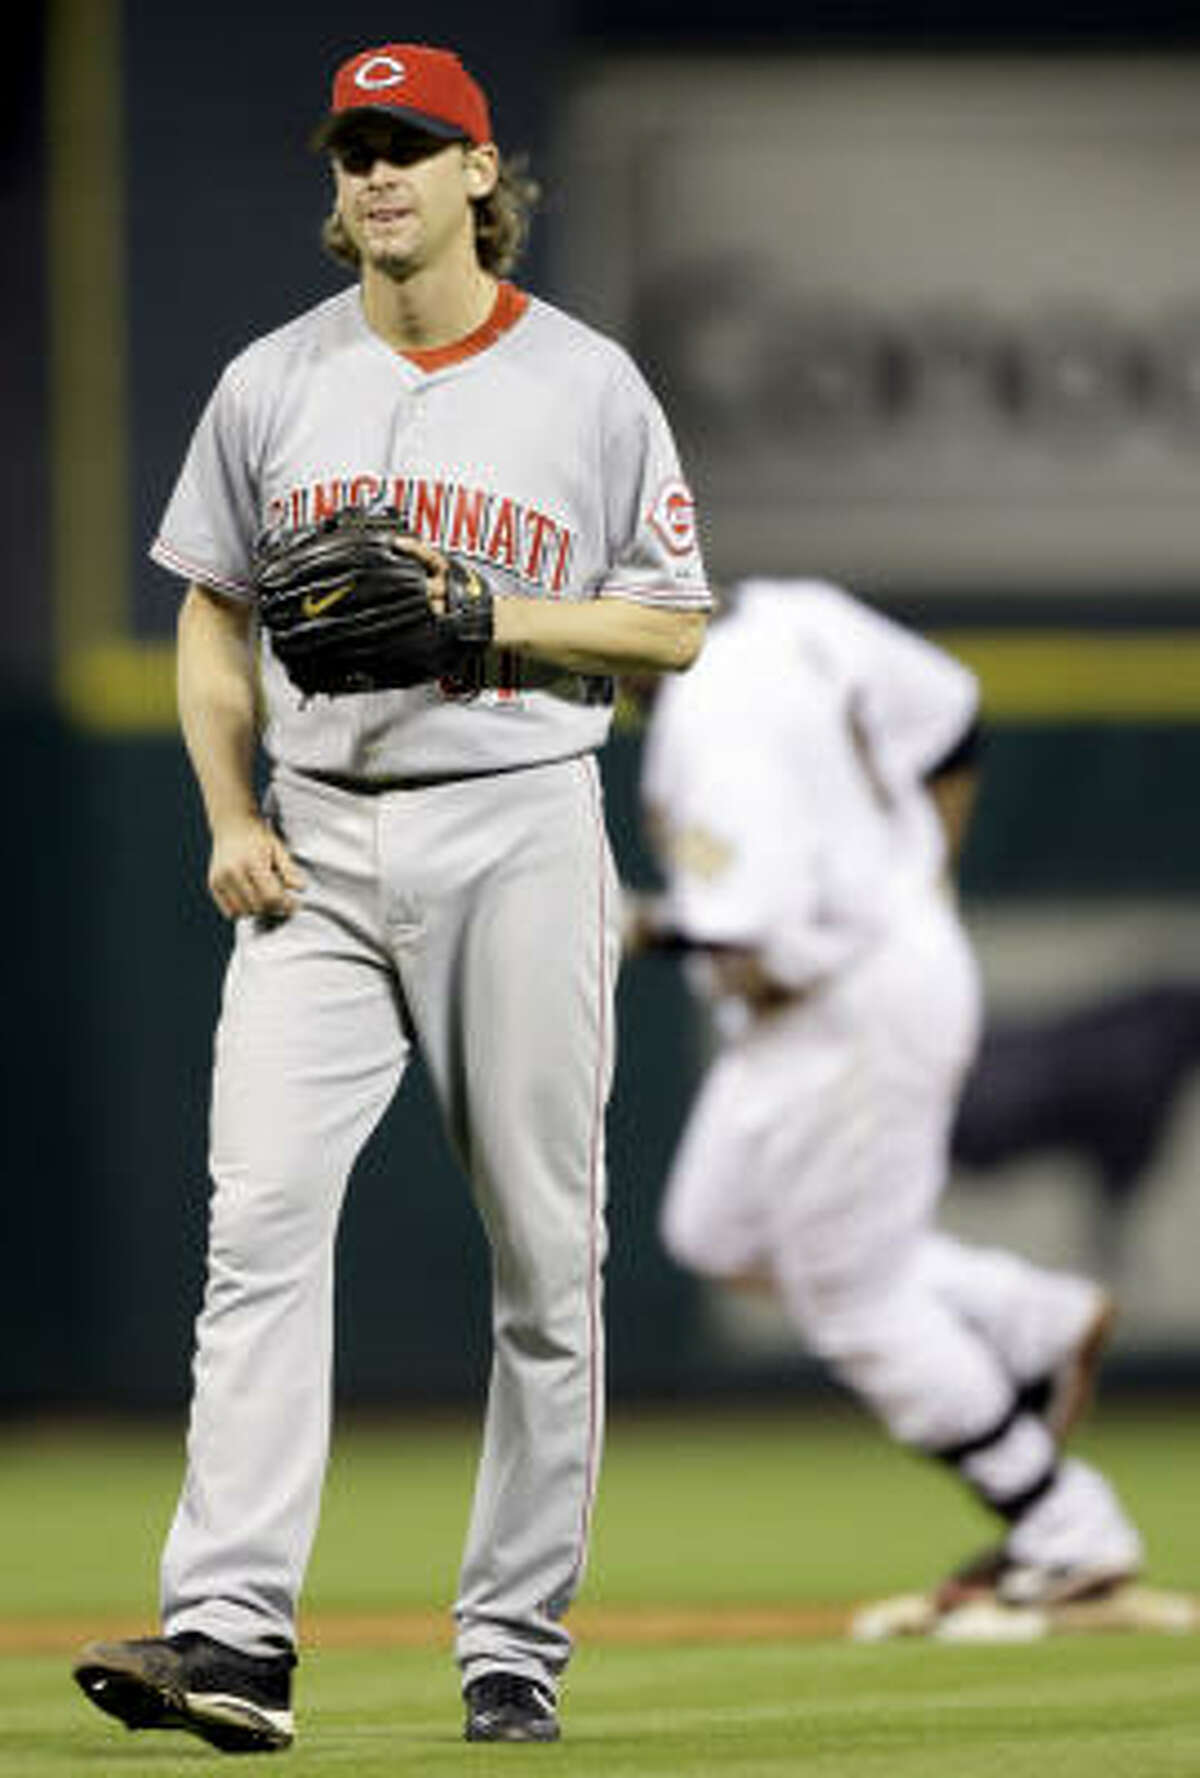 Reds starter Bronson Arroyo gave up back-to-back home runs to Lance Berkman and Carlos Lee in the sixth inning.